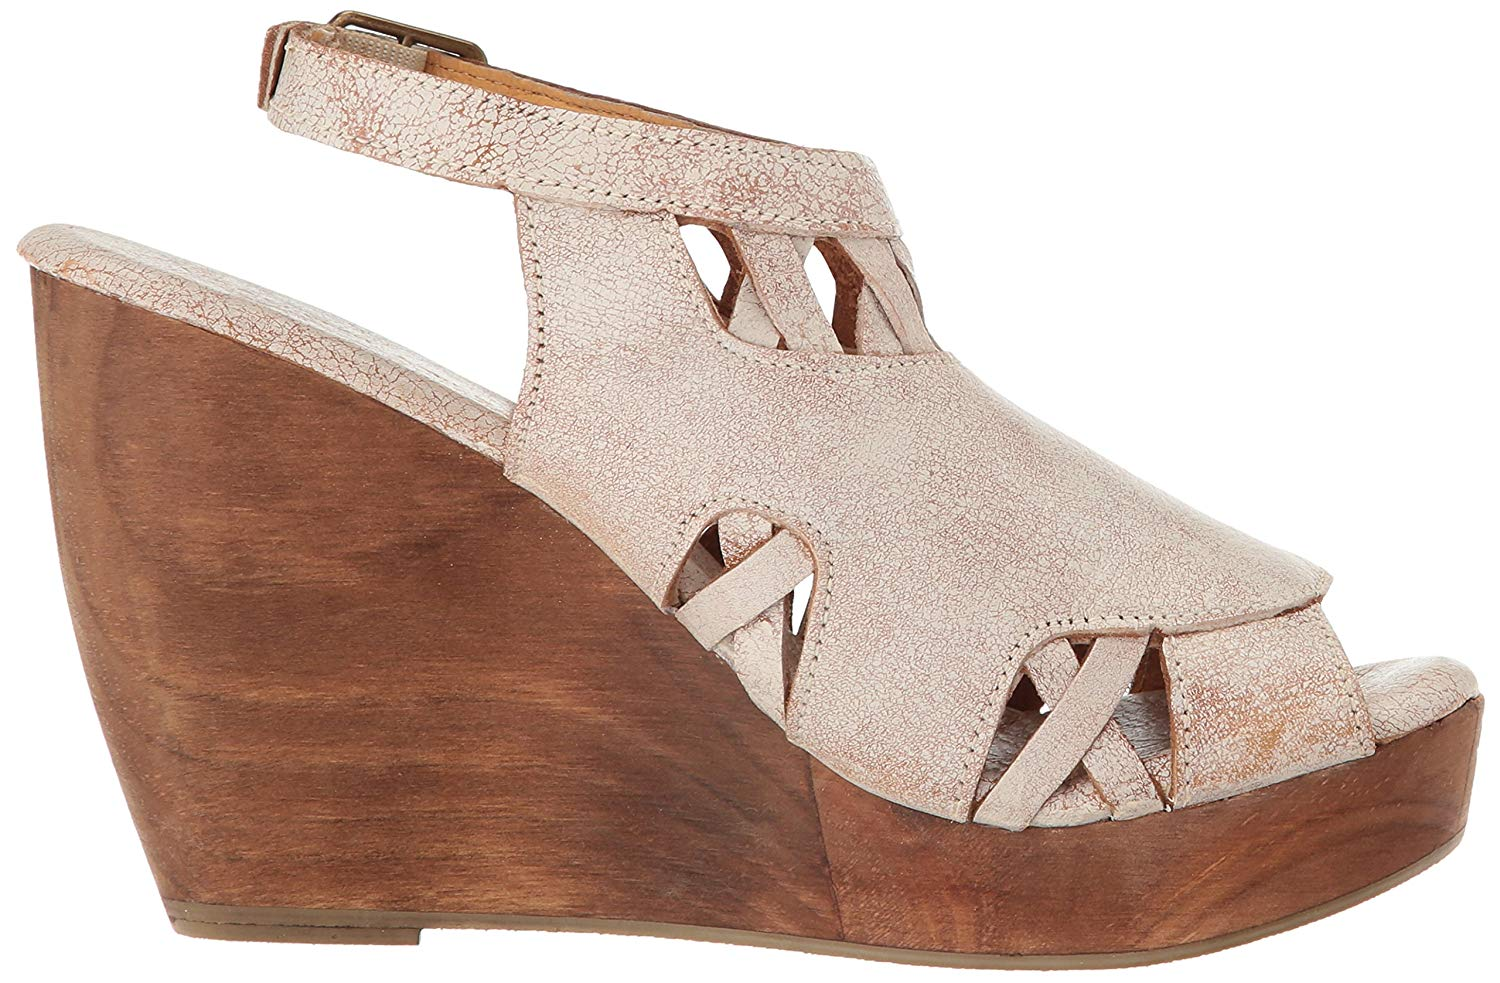 fab14fa5e8c Details about Very Volatile Women's Sloane Wedge Sandal, Off White, Size 9.0